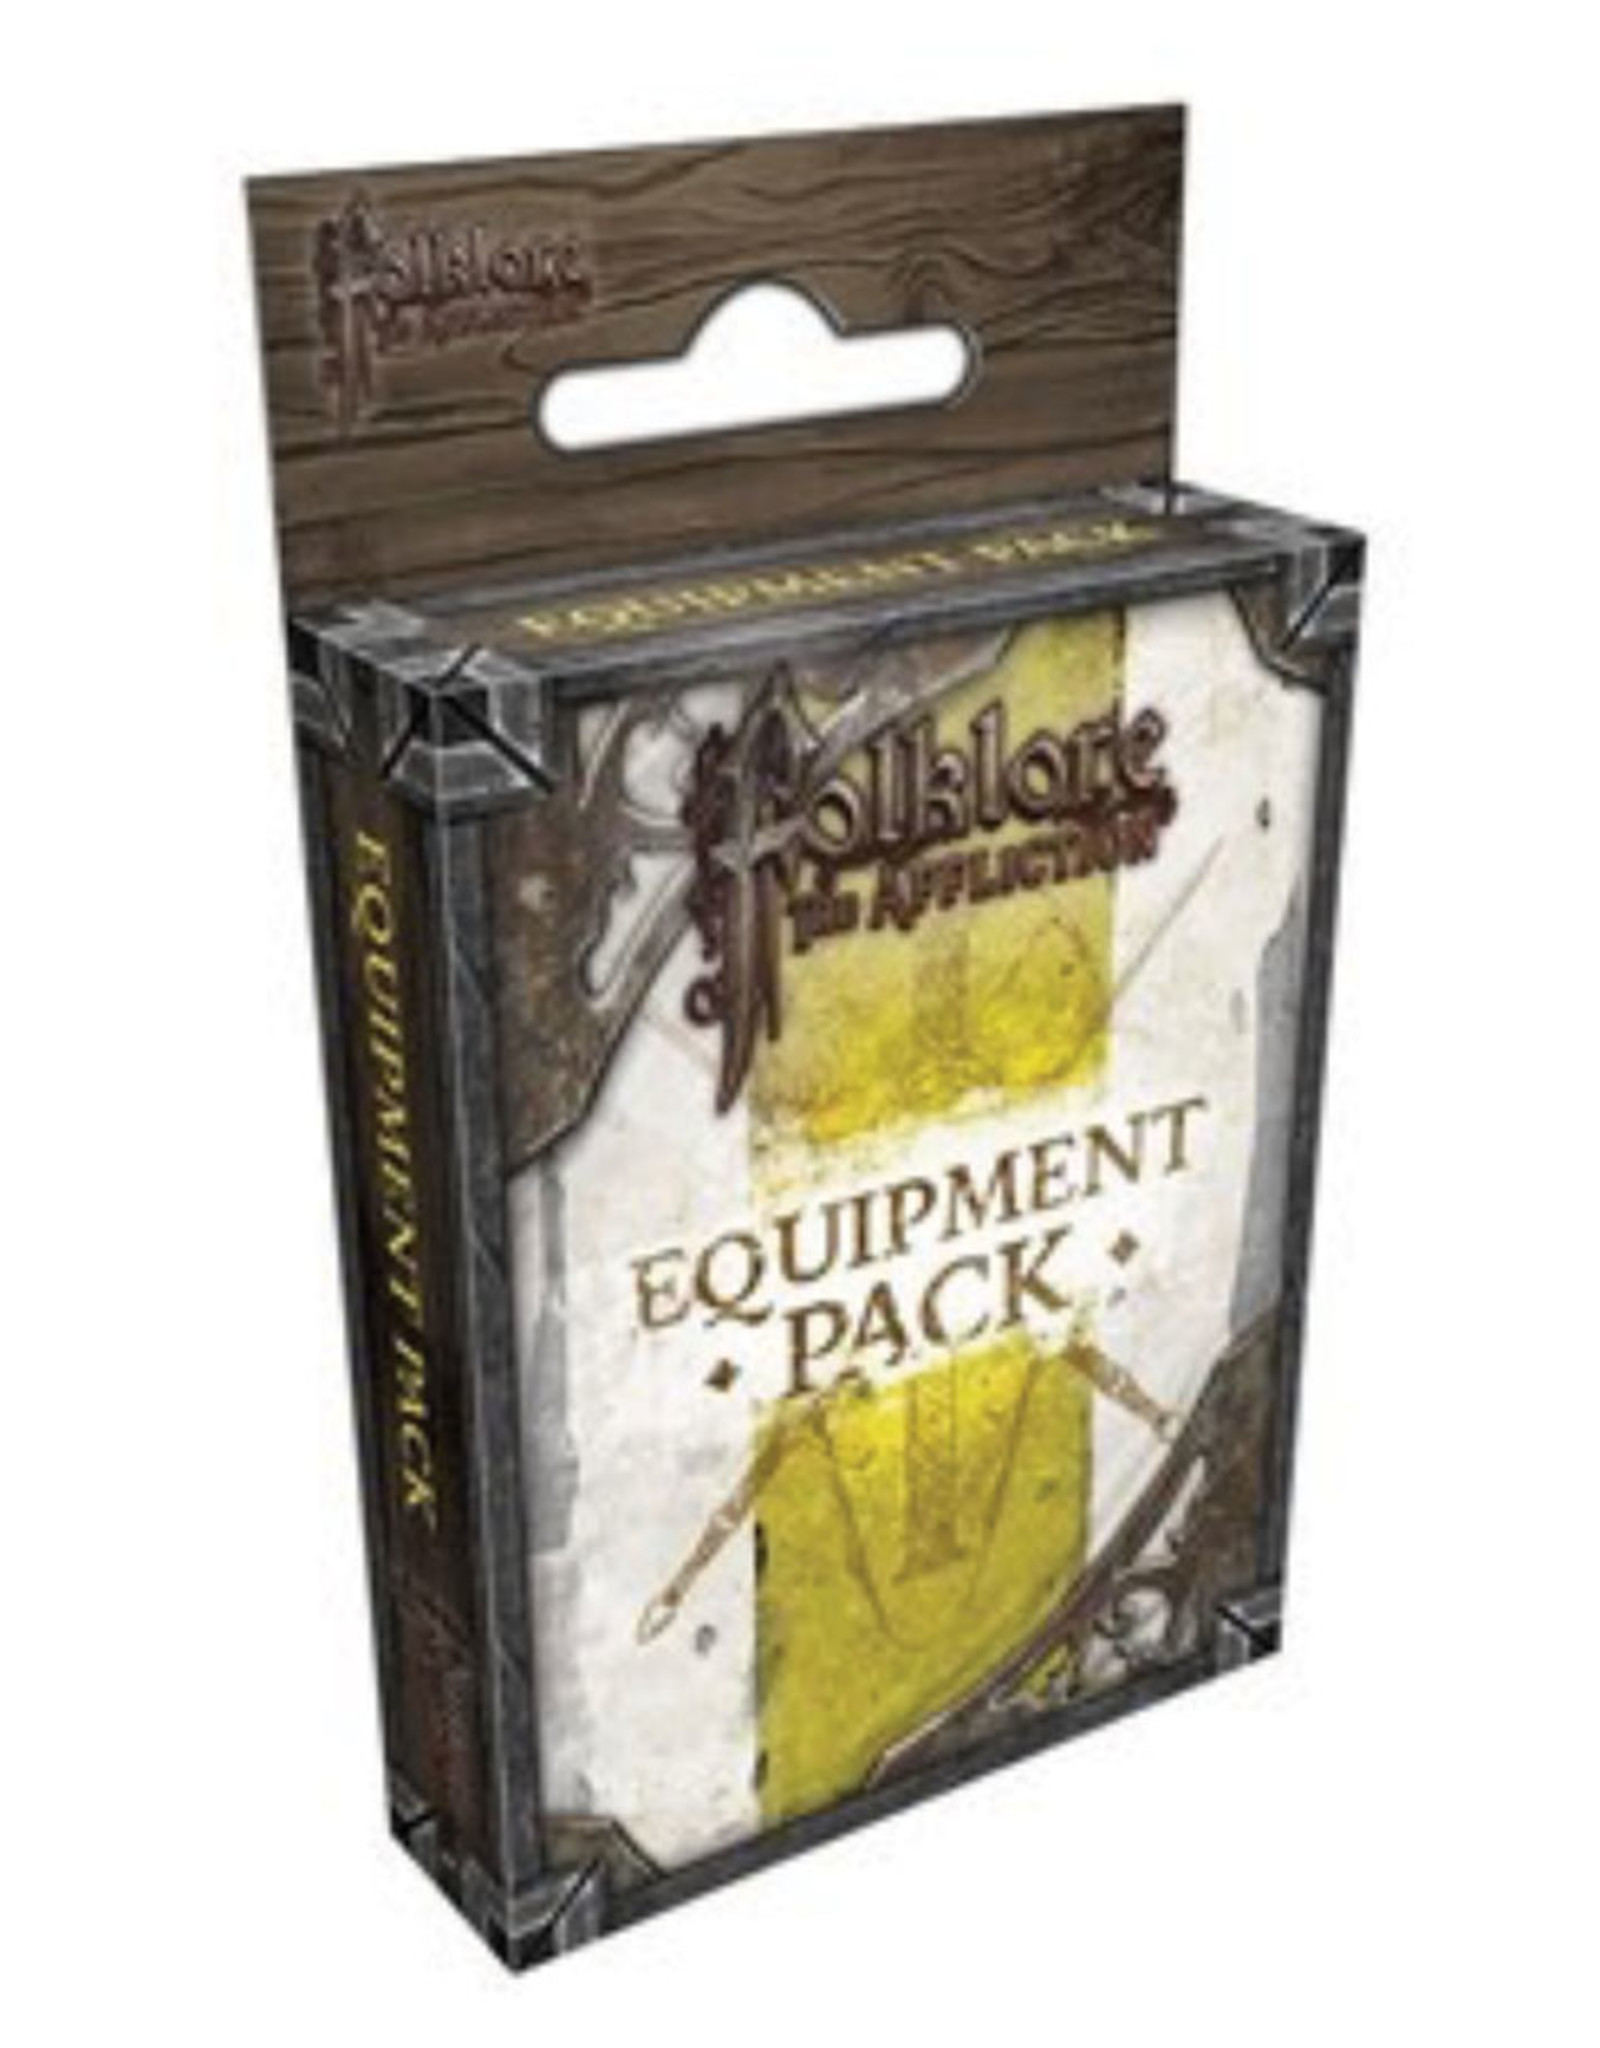 GreenBrier Games Folklore: The Affliction - Equipment Pack Expansion